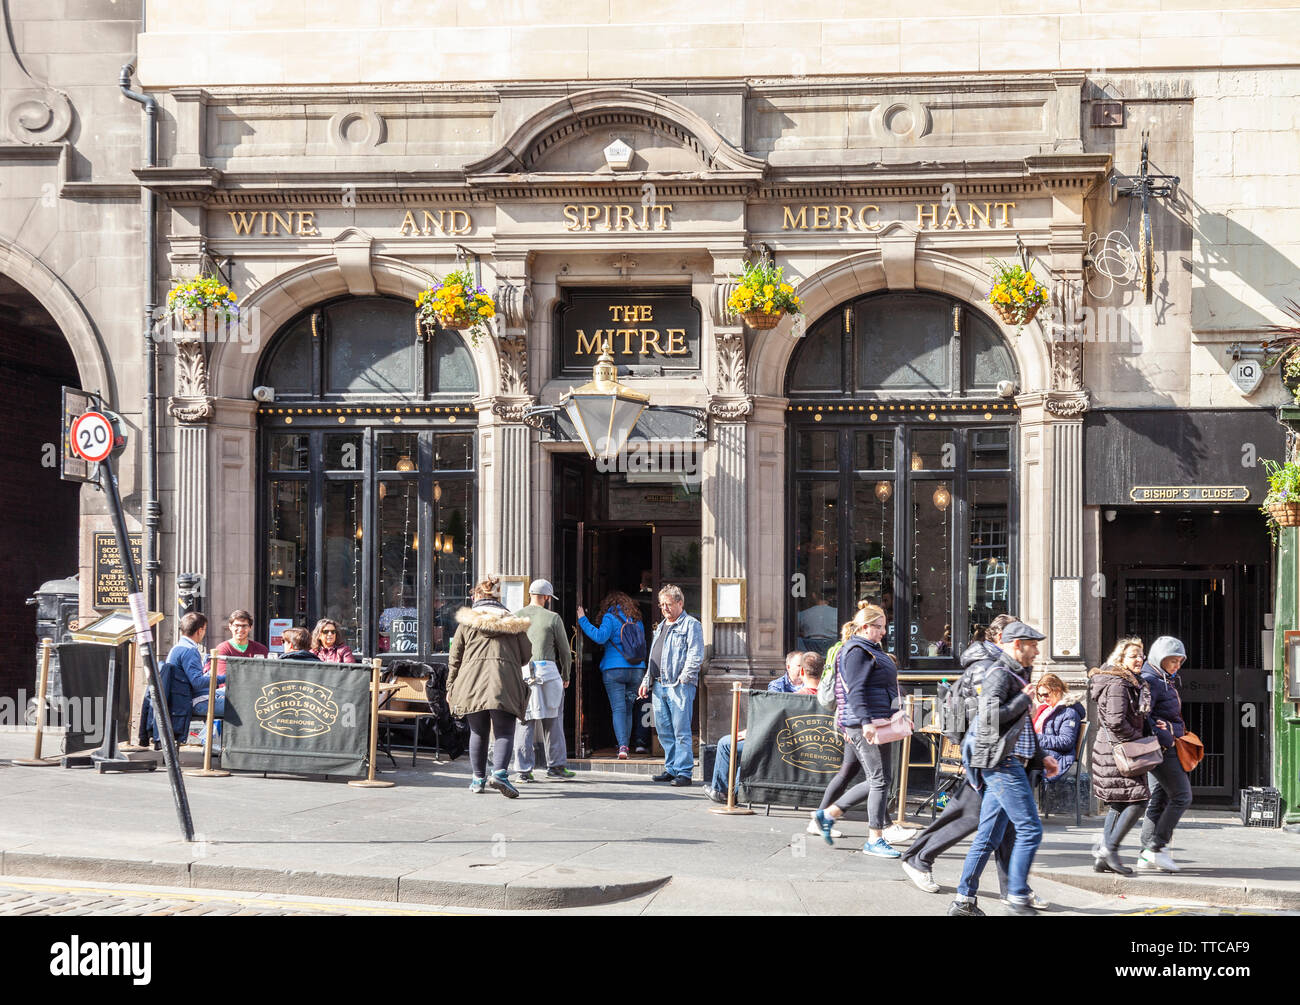 Cusomers outside and pedestrians passing the Mitre Bar, a city centre pub in the Royal Mile in the Old Town area of Edinburgh, Scotland, UK - Stock Image